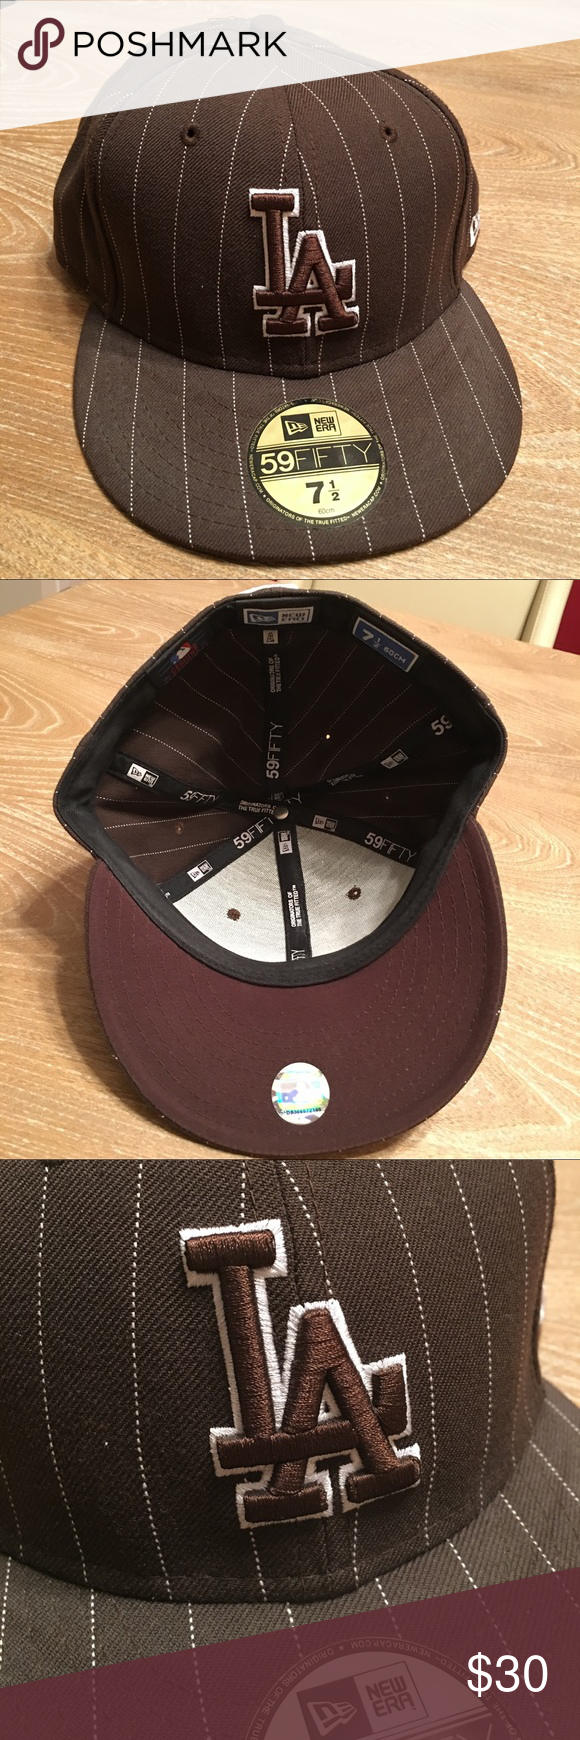 New Era 59fifty Fitted Hat La Dodgers Pinstripes Fitted Hats New Era 59fifty Urban Outfitters Accessories